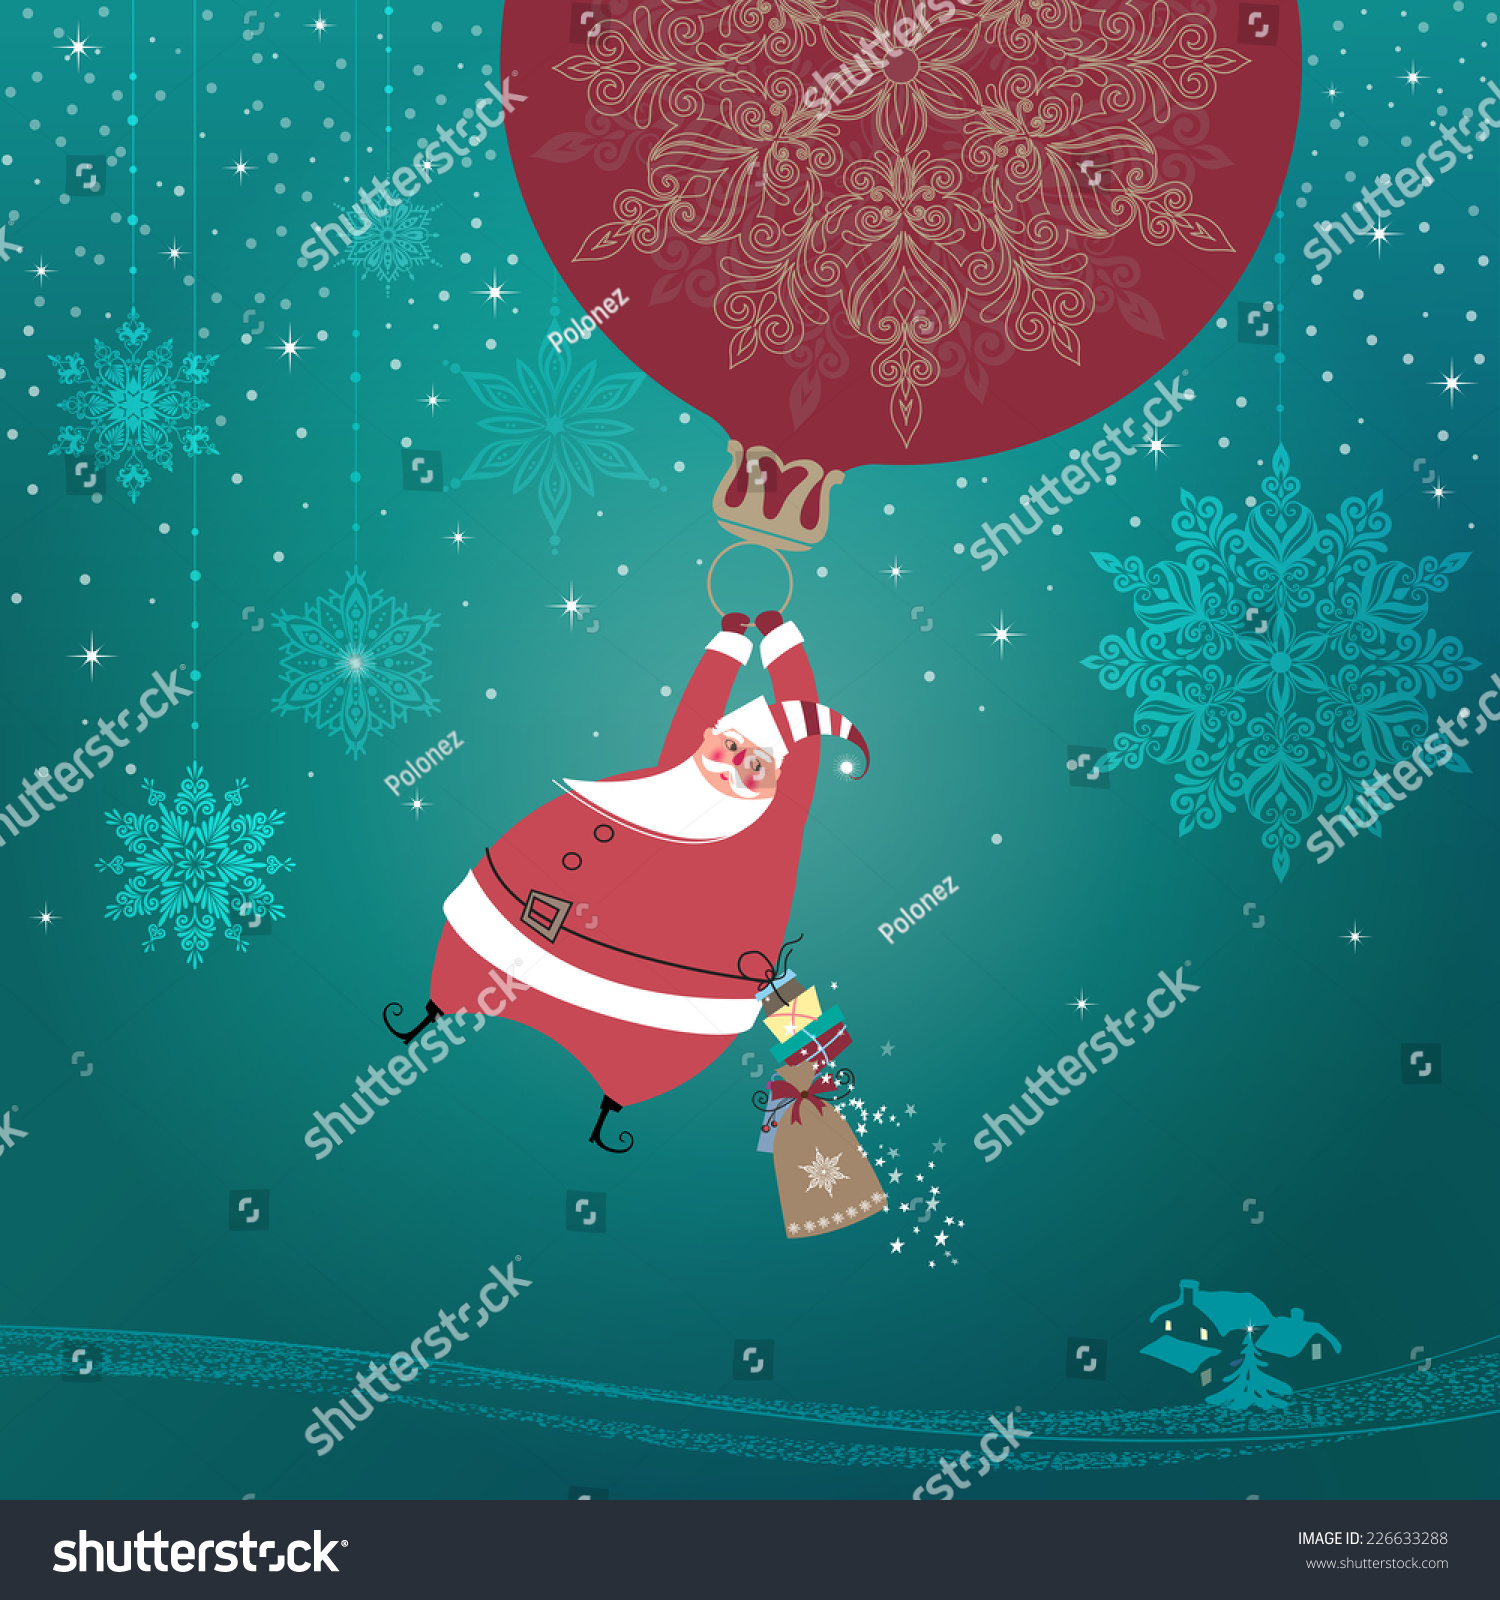 Magic silent night cute santa claus stock vector 2018 226633288 magic silent night cute santa claus with gifts is coming down holding giant christmas ornament m4hsunfo Images